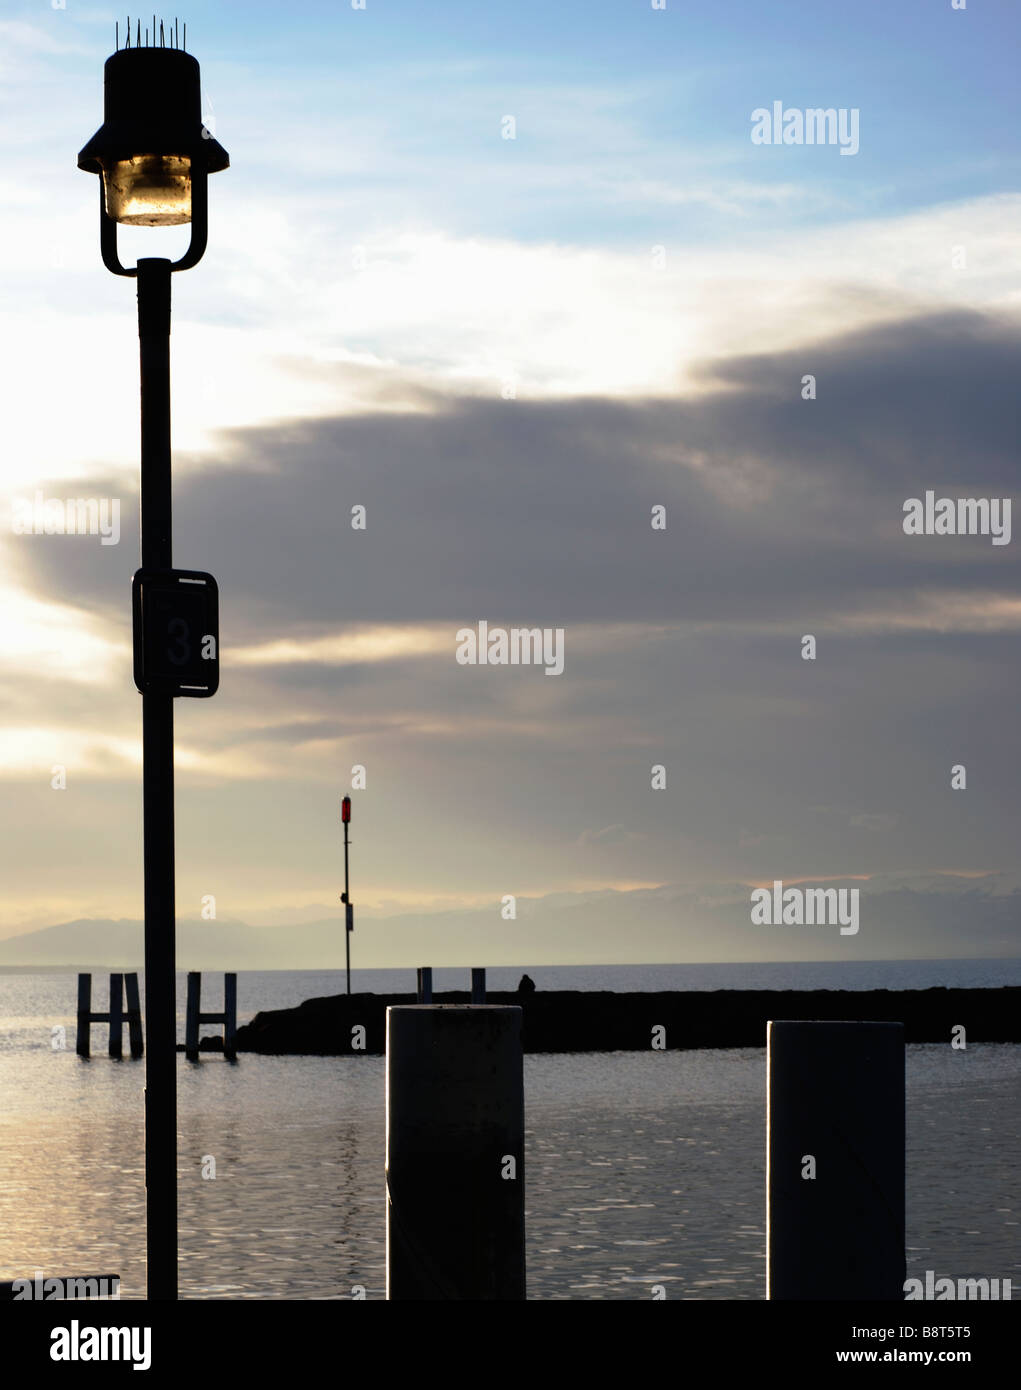 Evening view of Lac Leman as viewed from Lausanne, Switzerland, lake side cities include, Geneve, Vevey, Montreux - Stock Image